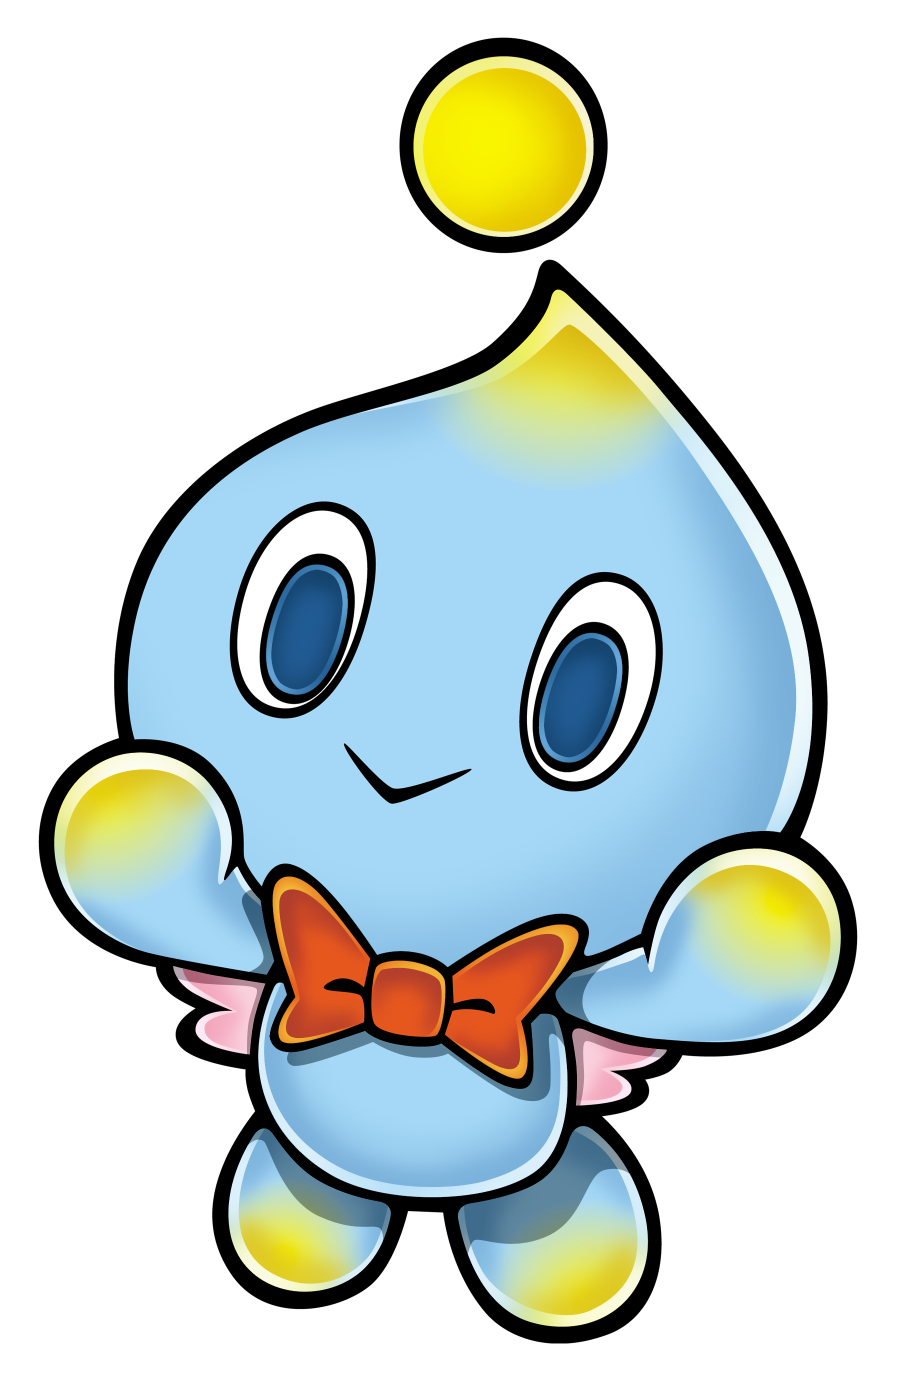 Transparent chao translucent. Image png community central